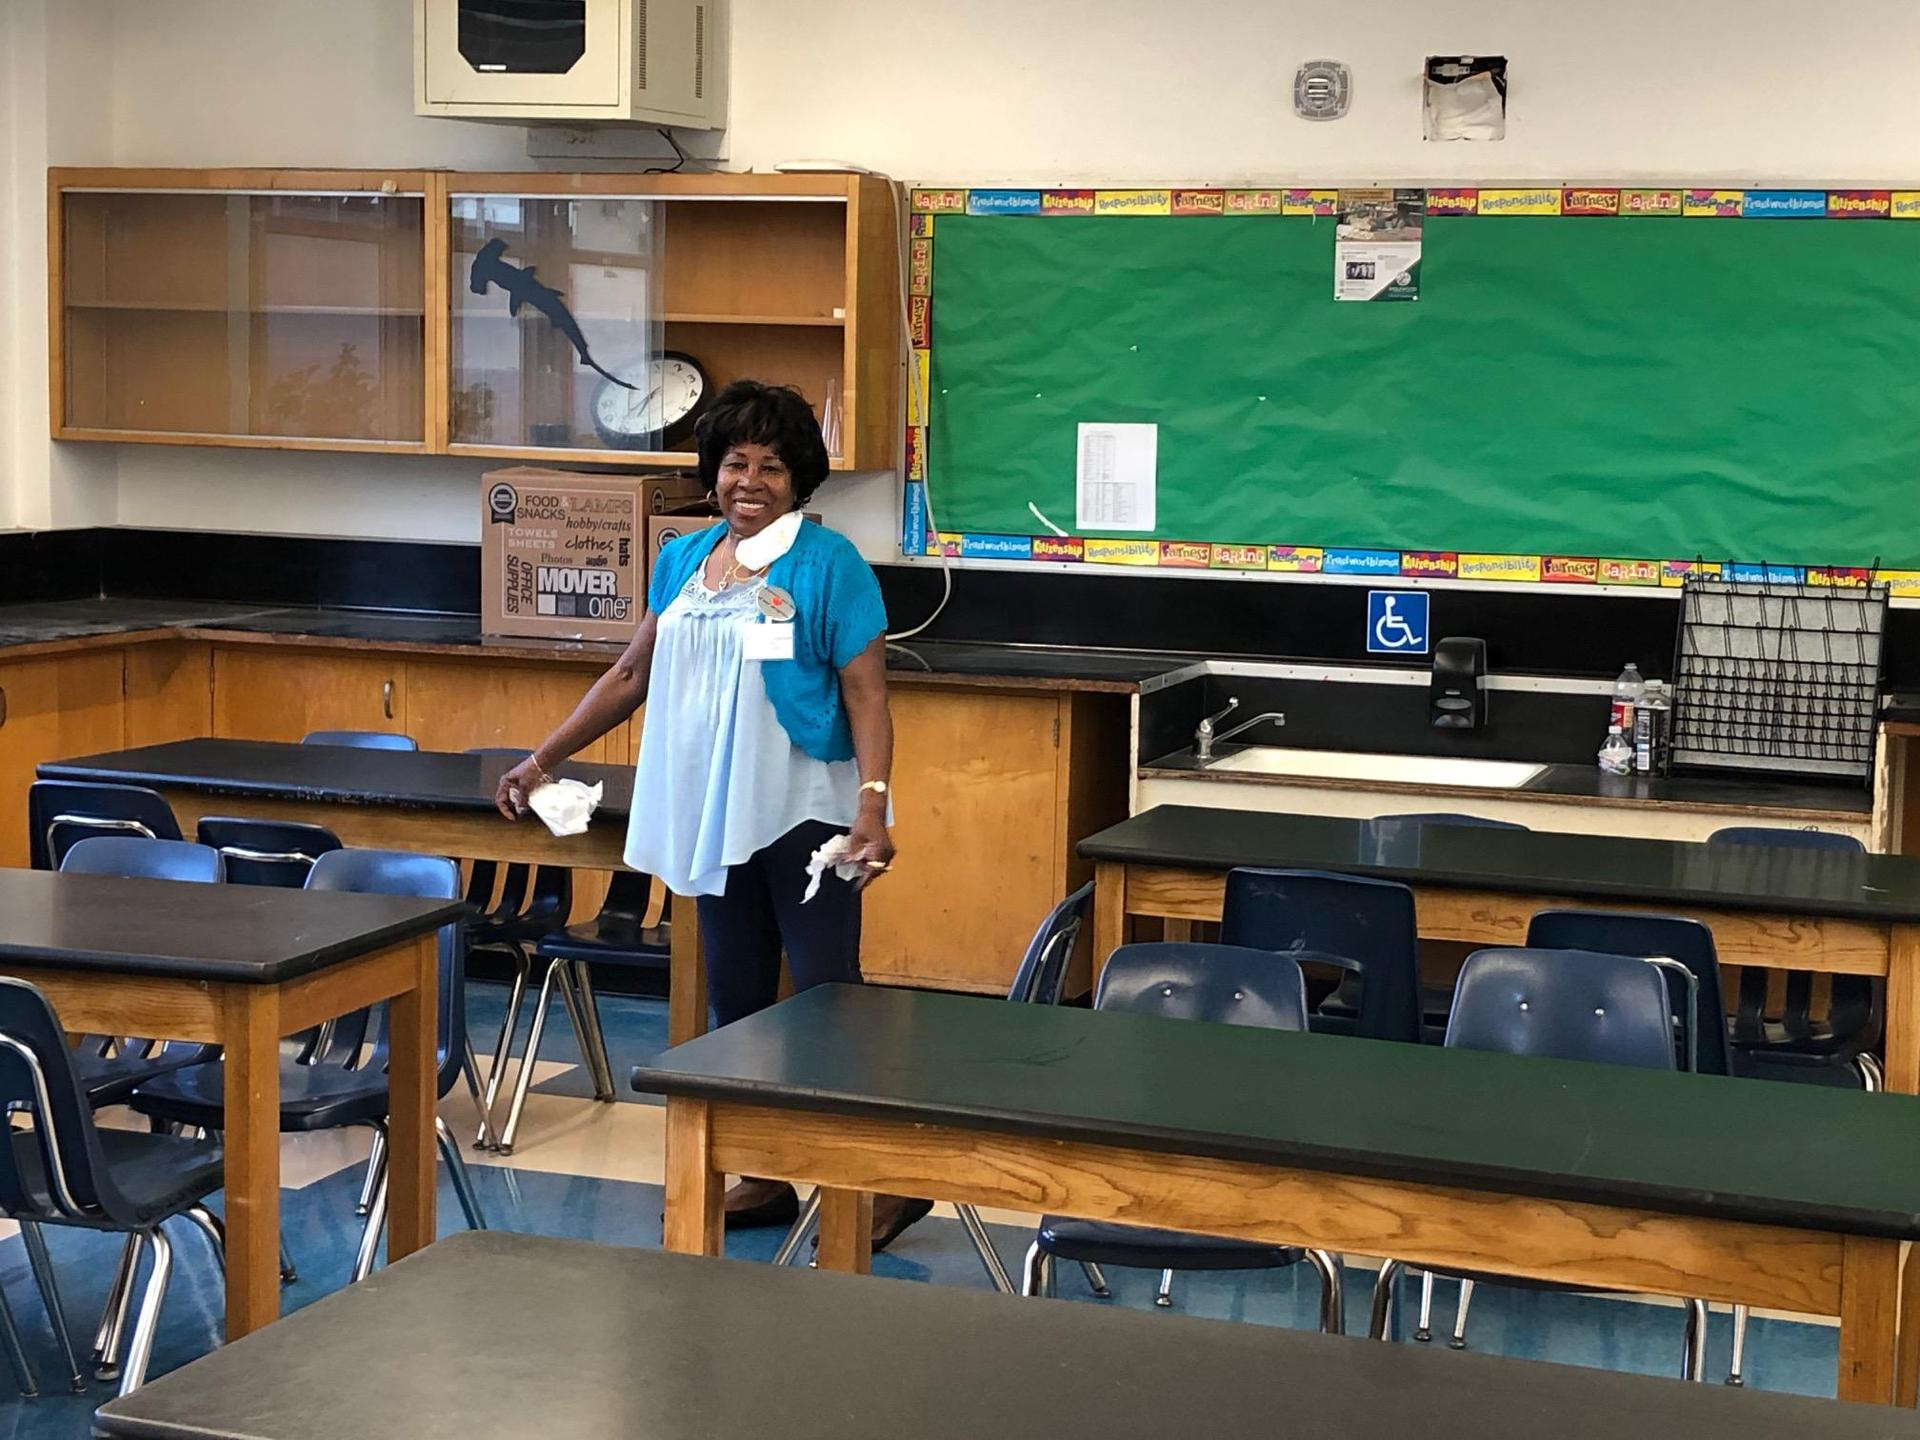 Mariner Makeover Crew cleaning classroom